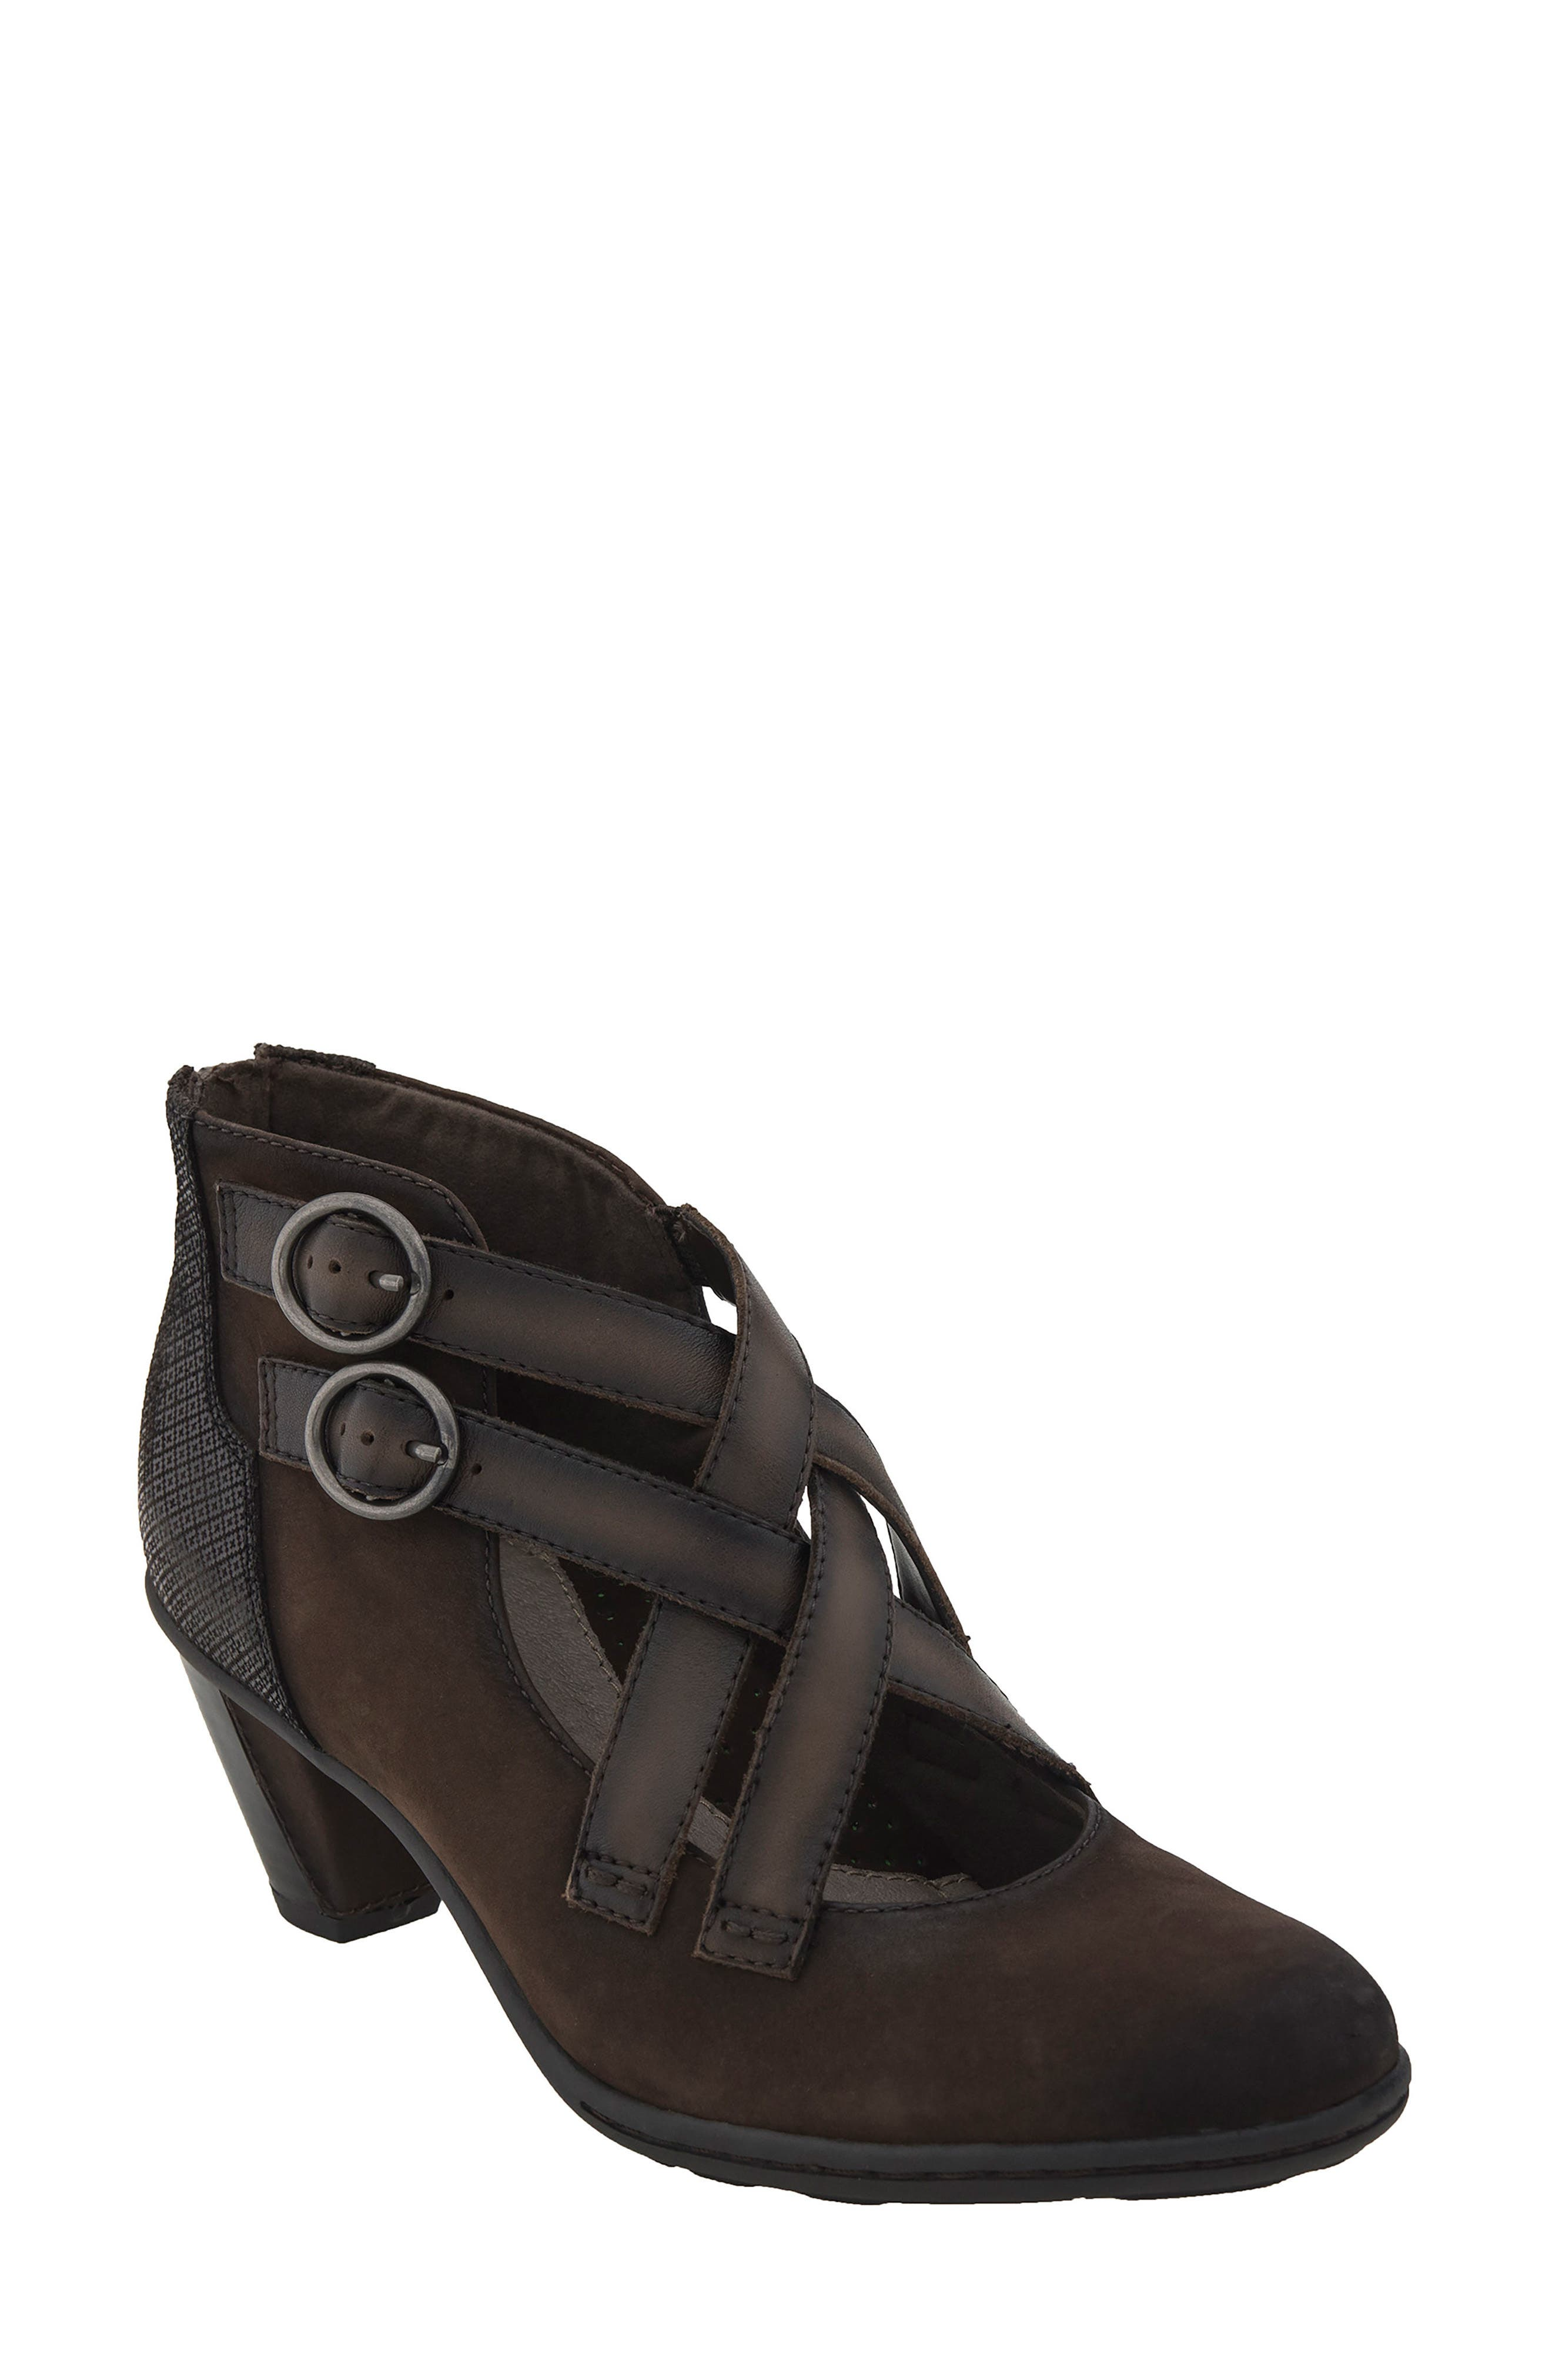 Main Image - Earth® 'Amber' Buckle Bootie (Women)